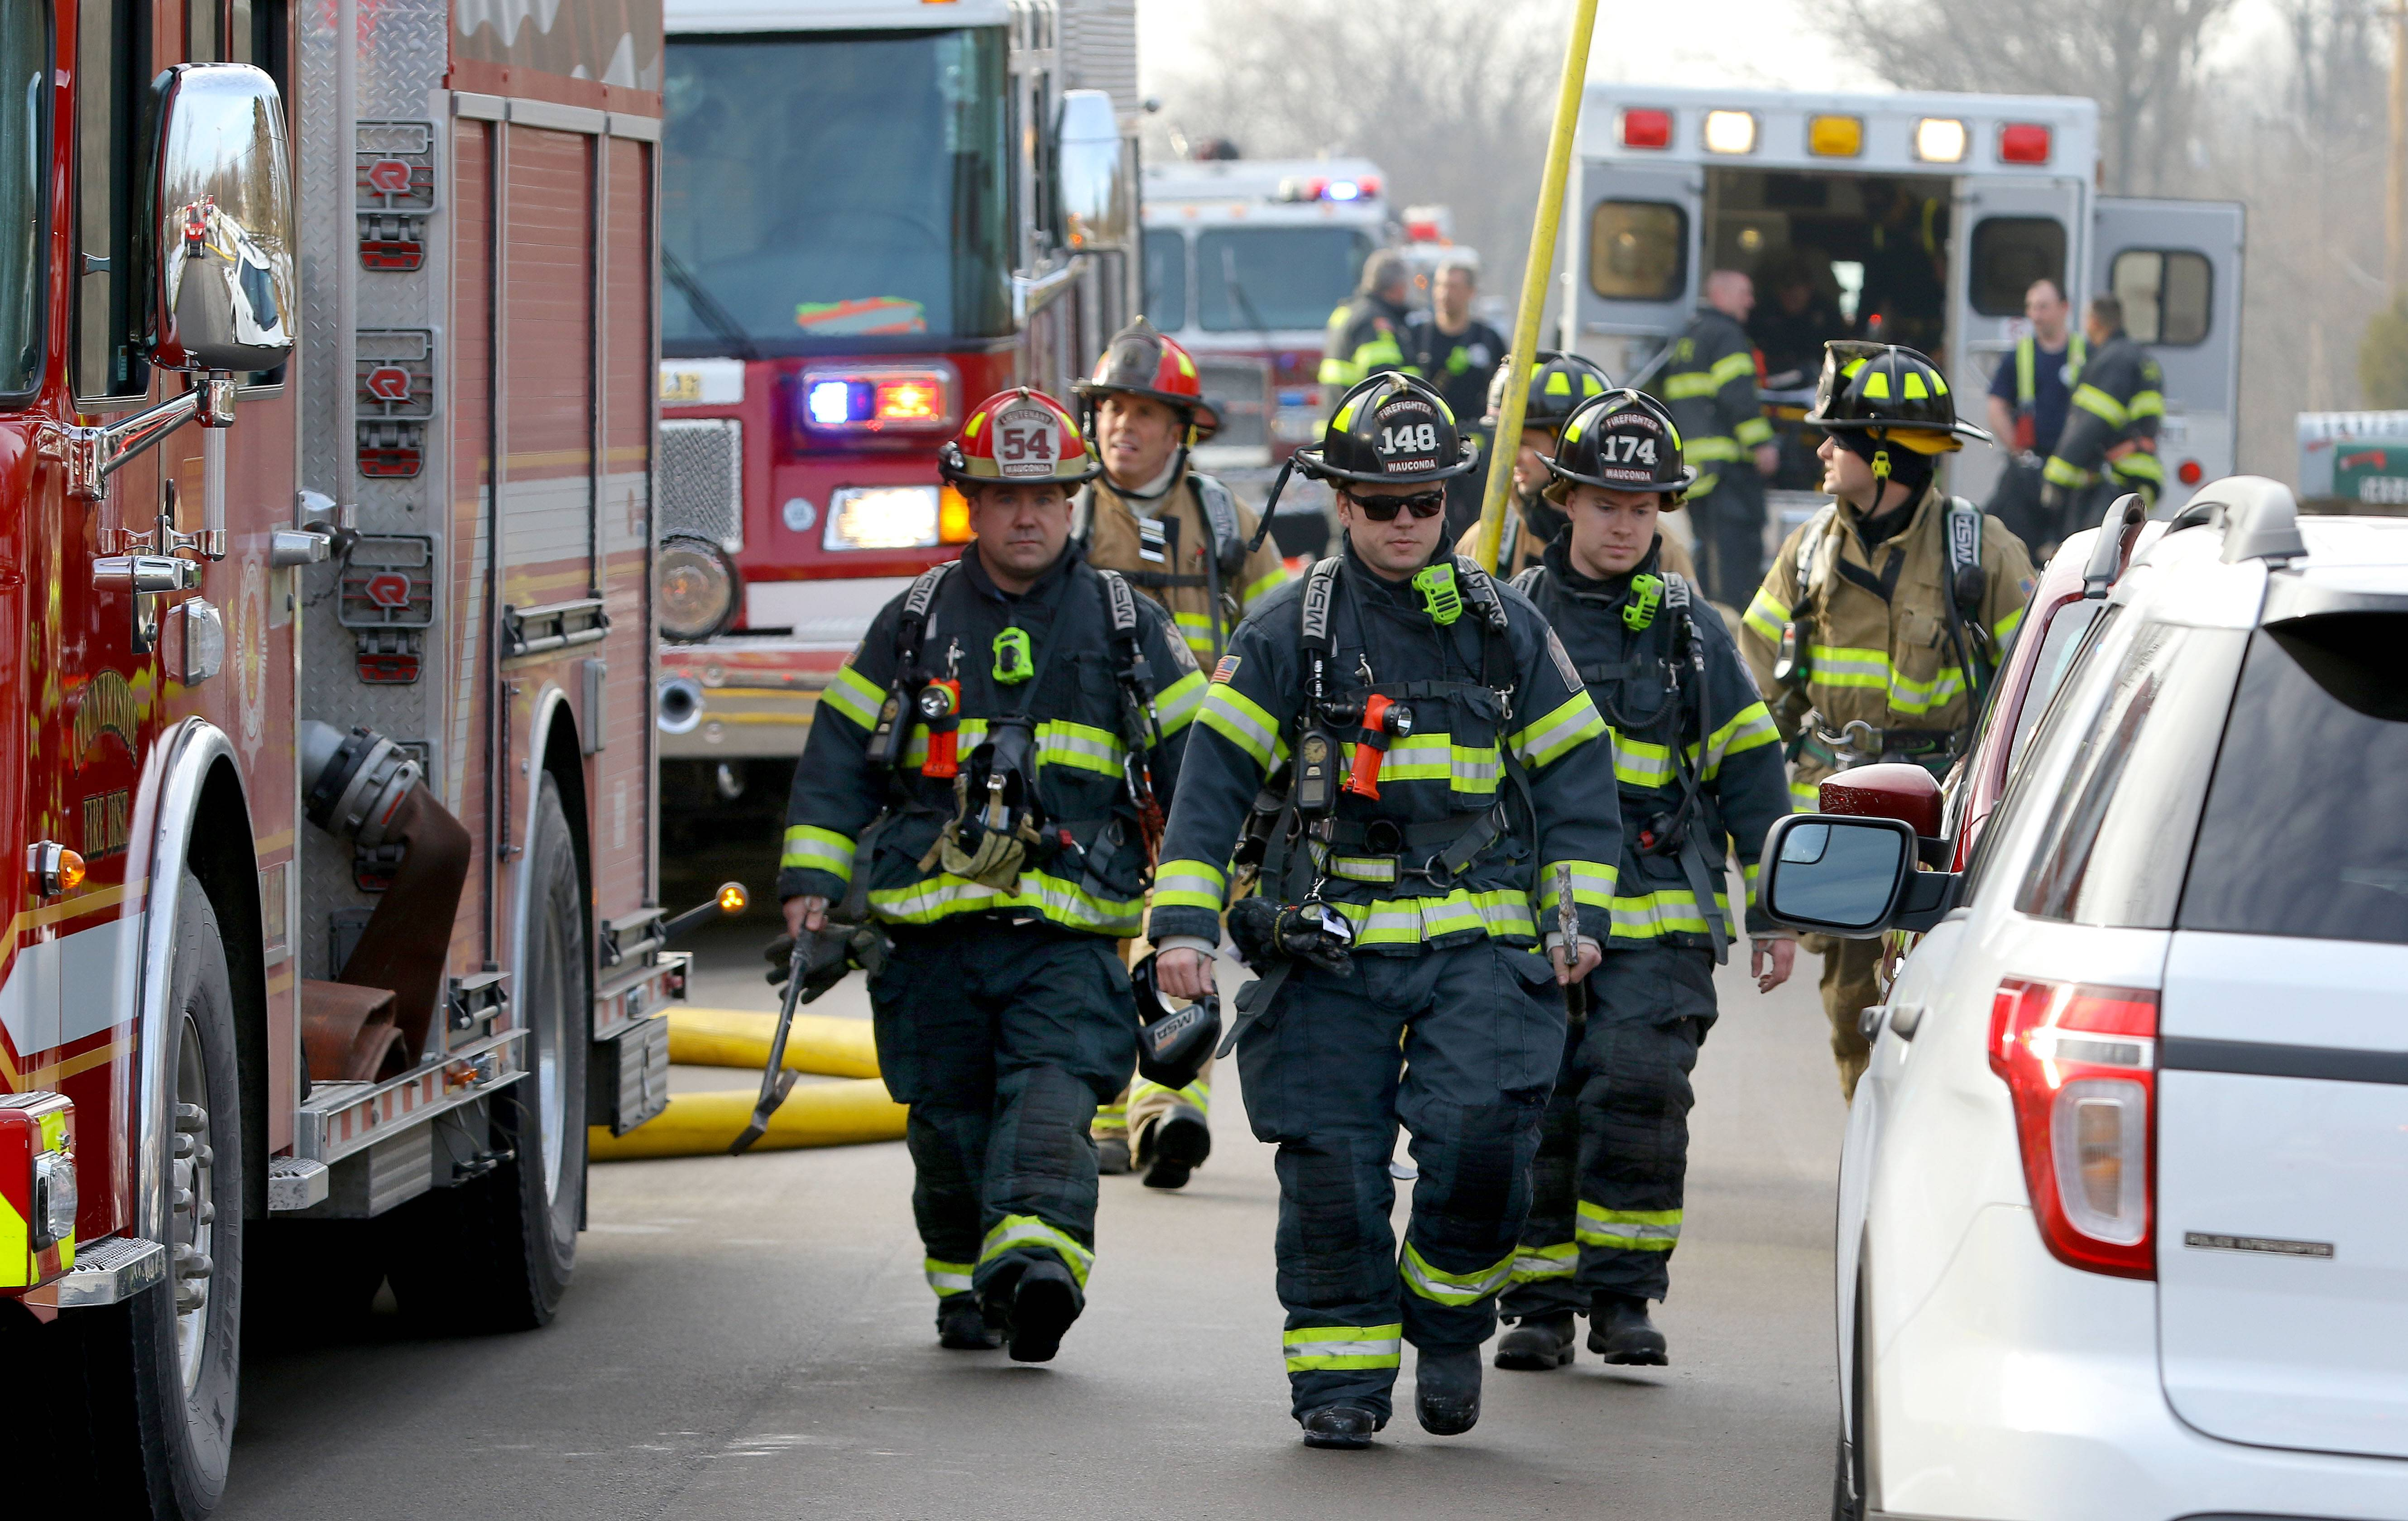 Firefighters head to the scene of a blaze that destroyed a barn near Libertyville on Tuesday.